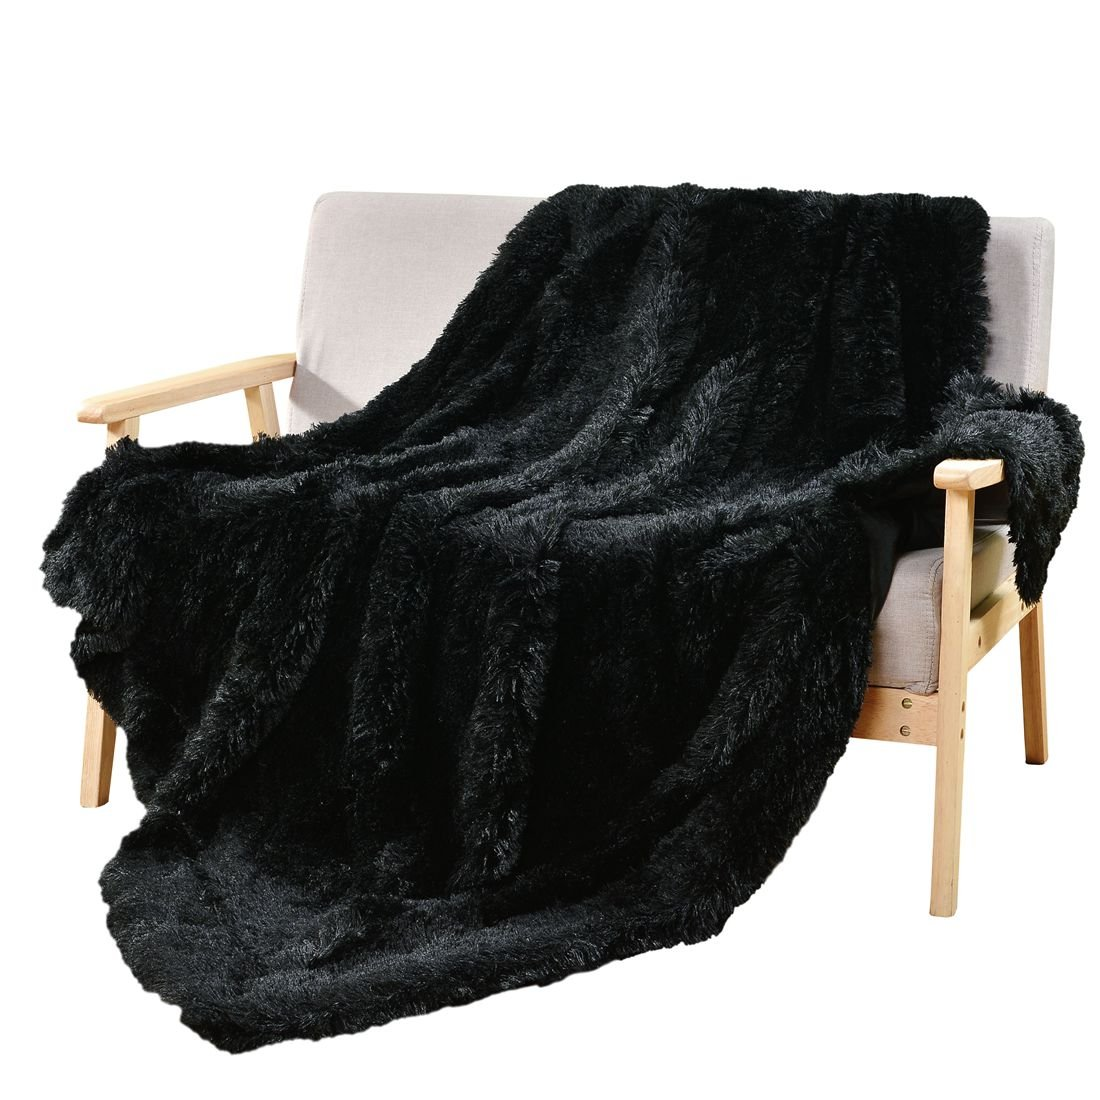 DECOSY Super Soft Faux Fur Throws Warm Cozy Sofa Blanket Black 50\